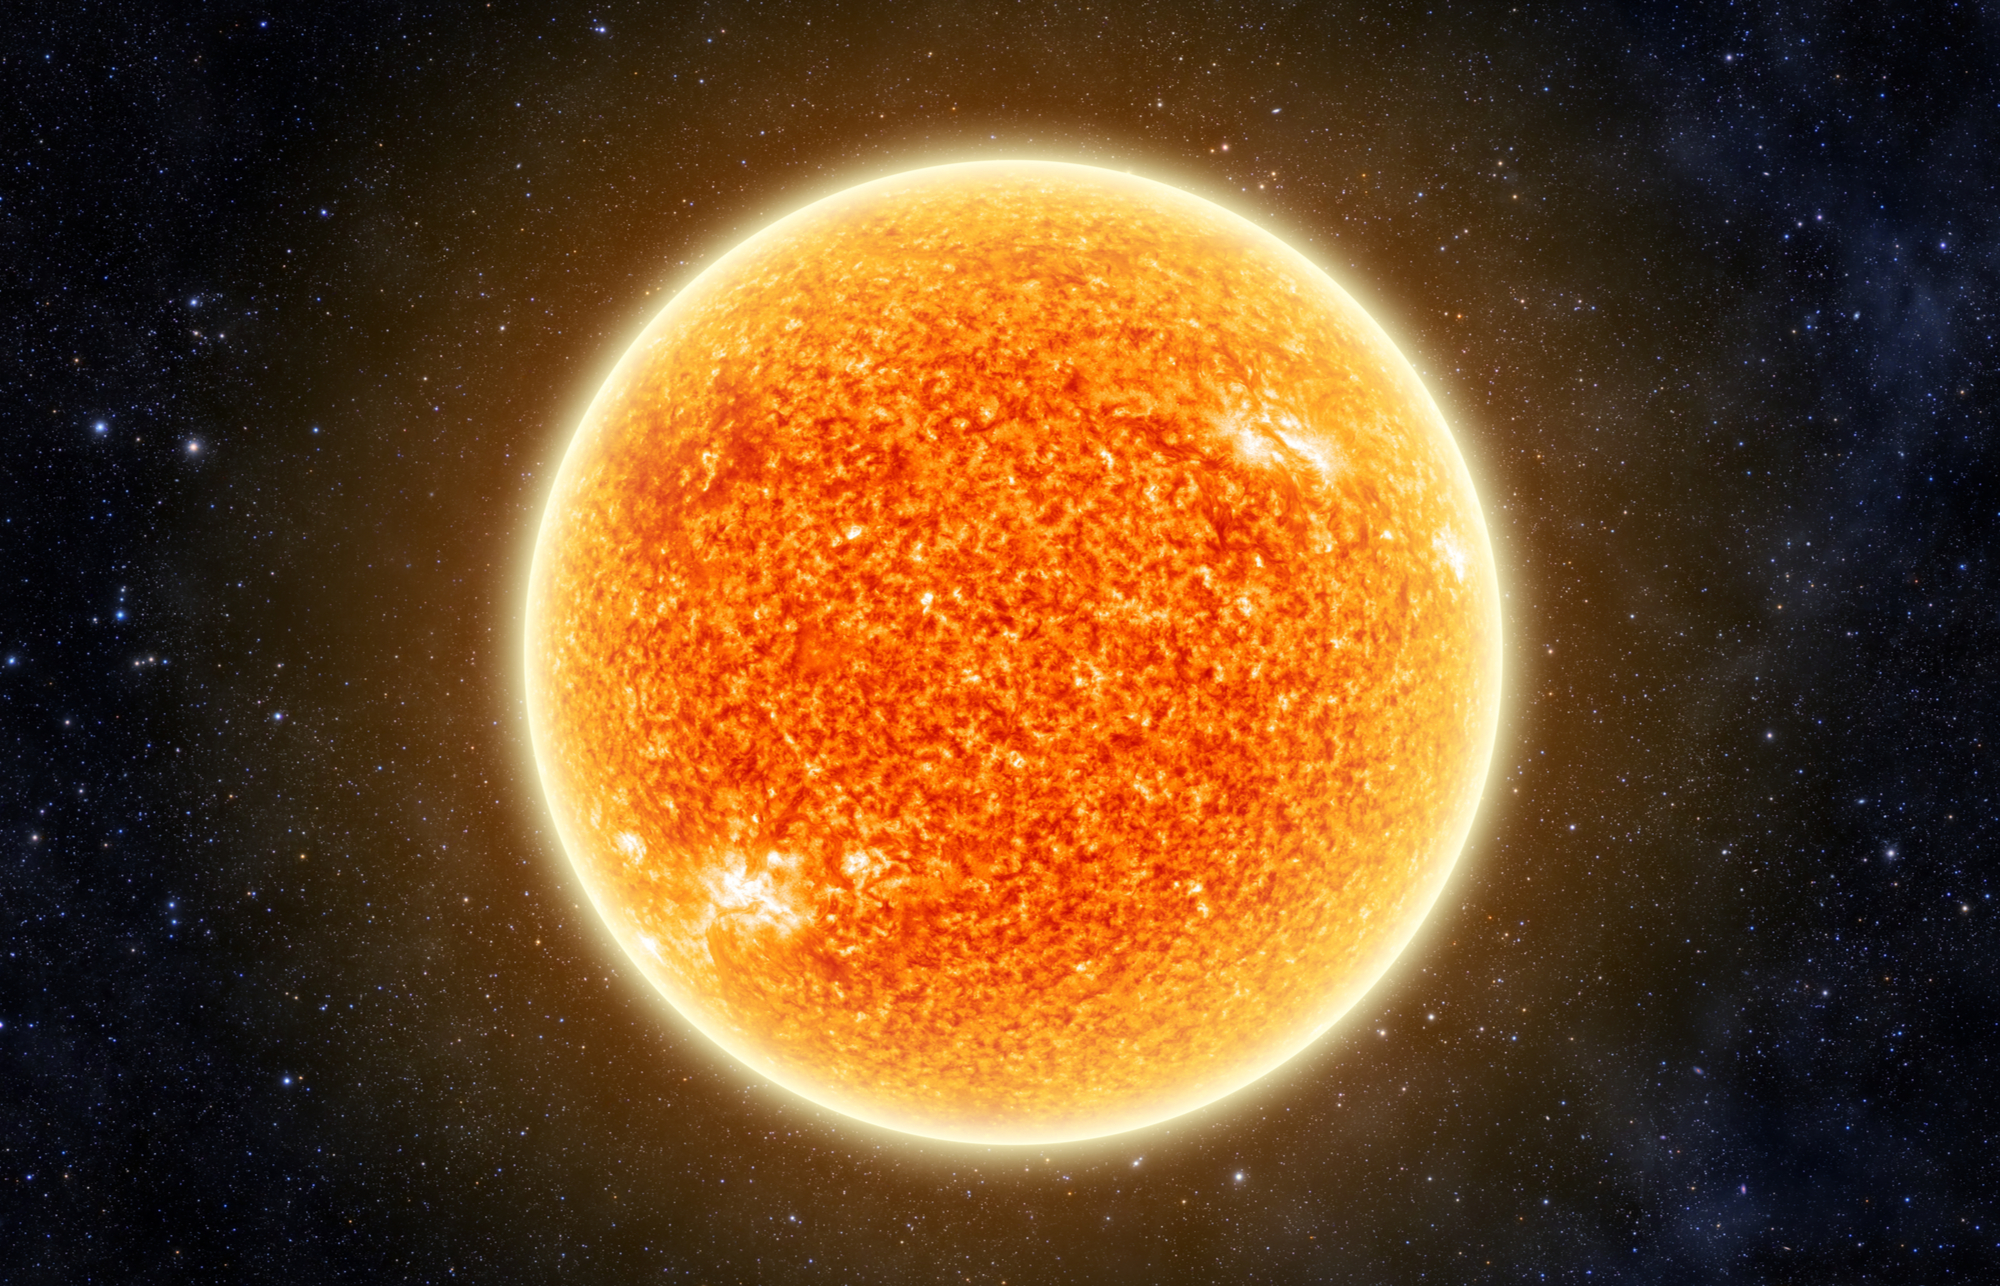 The sun in space-72ppi